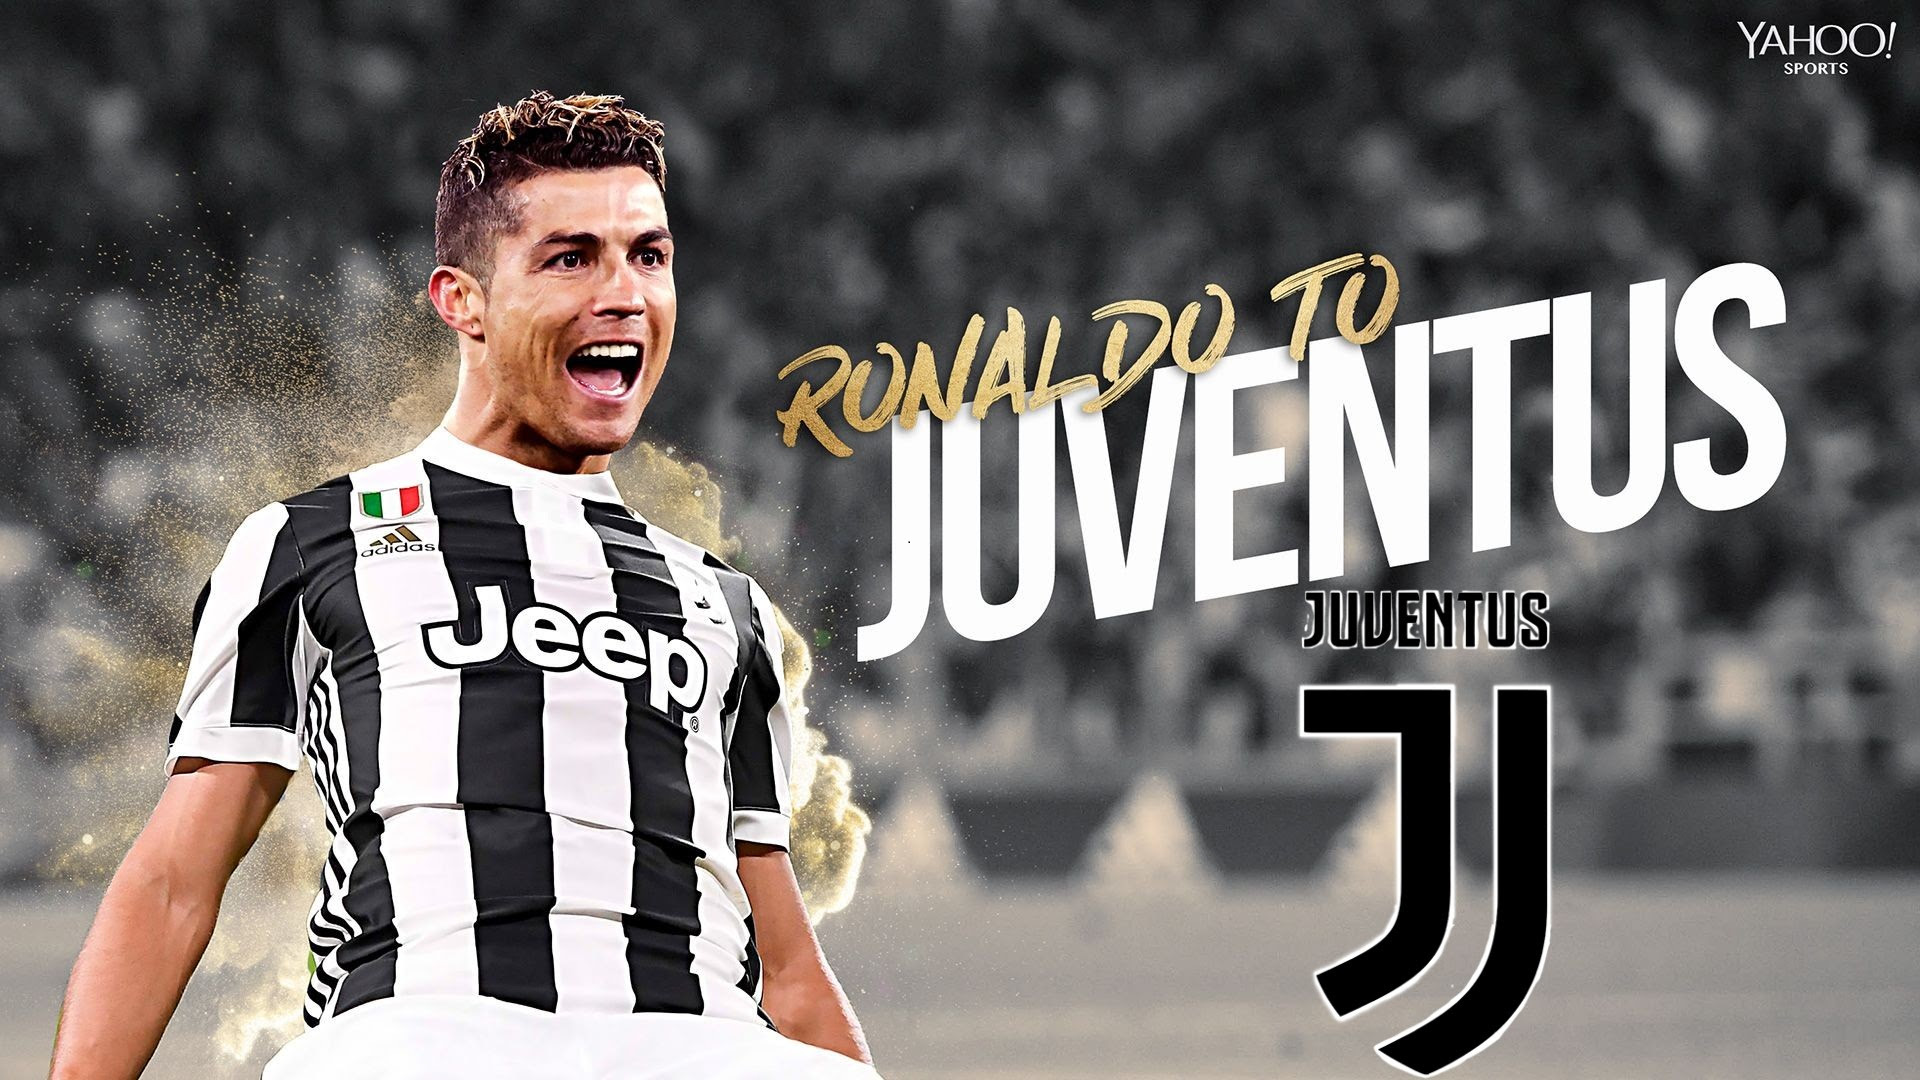 af6c3446965 Cr7 Wallpaper Iphone Cristiano Ronaldo Iphone Background For Desktop. Juventus  Wallpapers ...